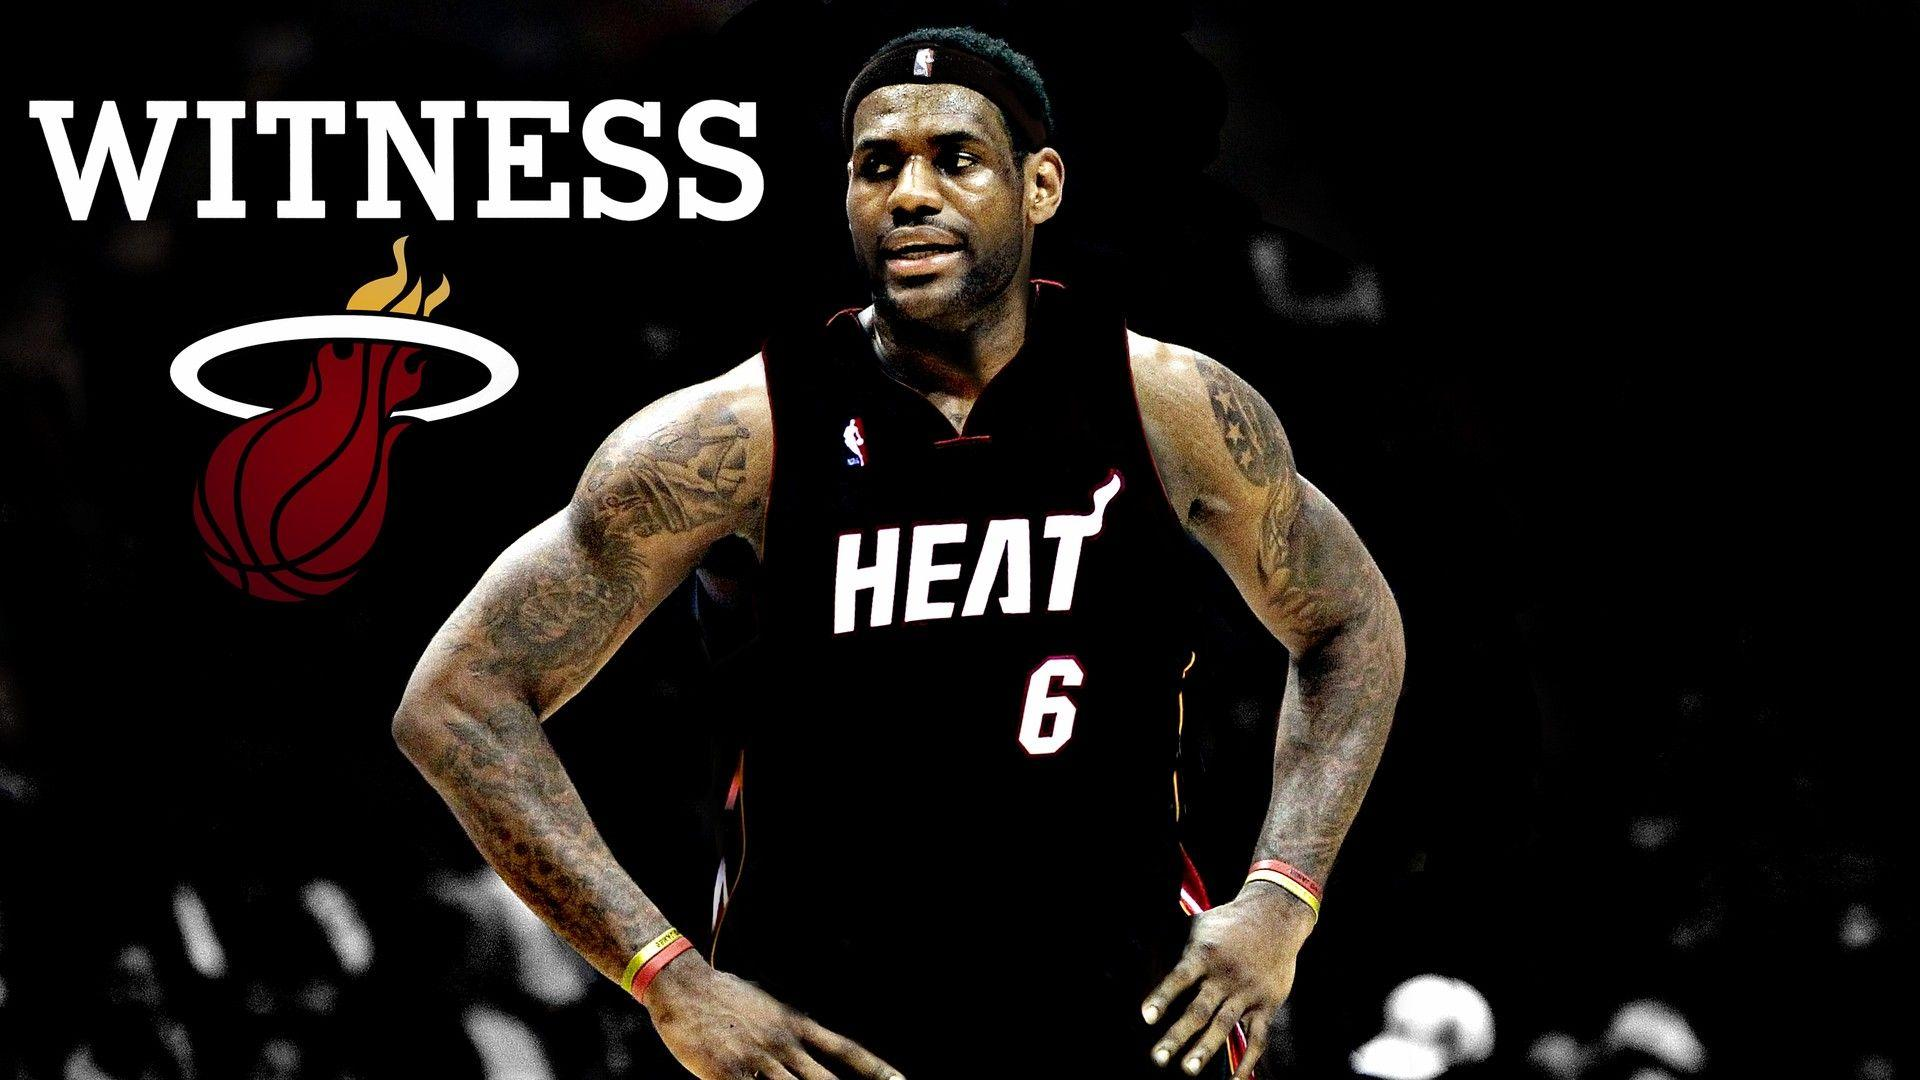 HD Lebron James Cleveland Backgrounds | HD Wallpapers, Backgrounds ...